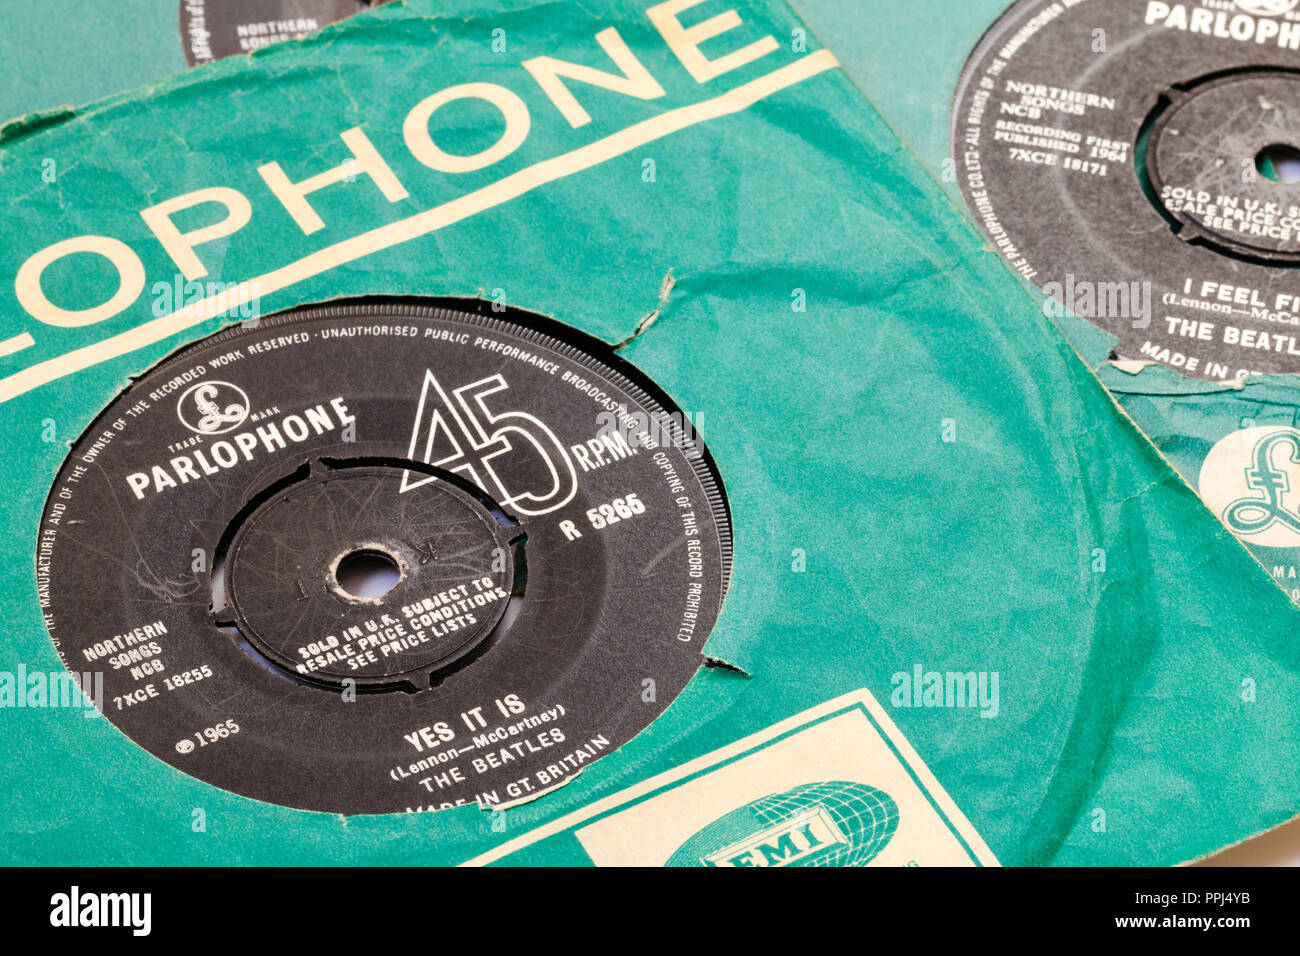 Parlophone Stock Photos Amp Parlophone Stock Images Alamy